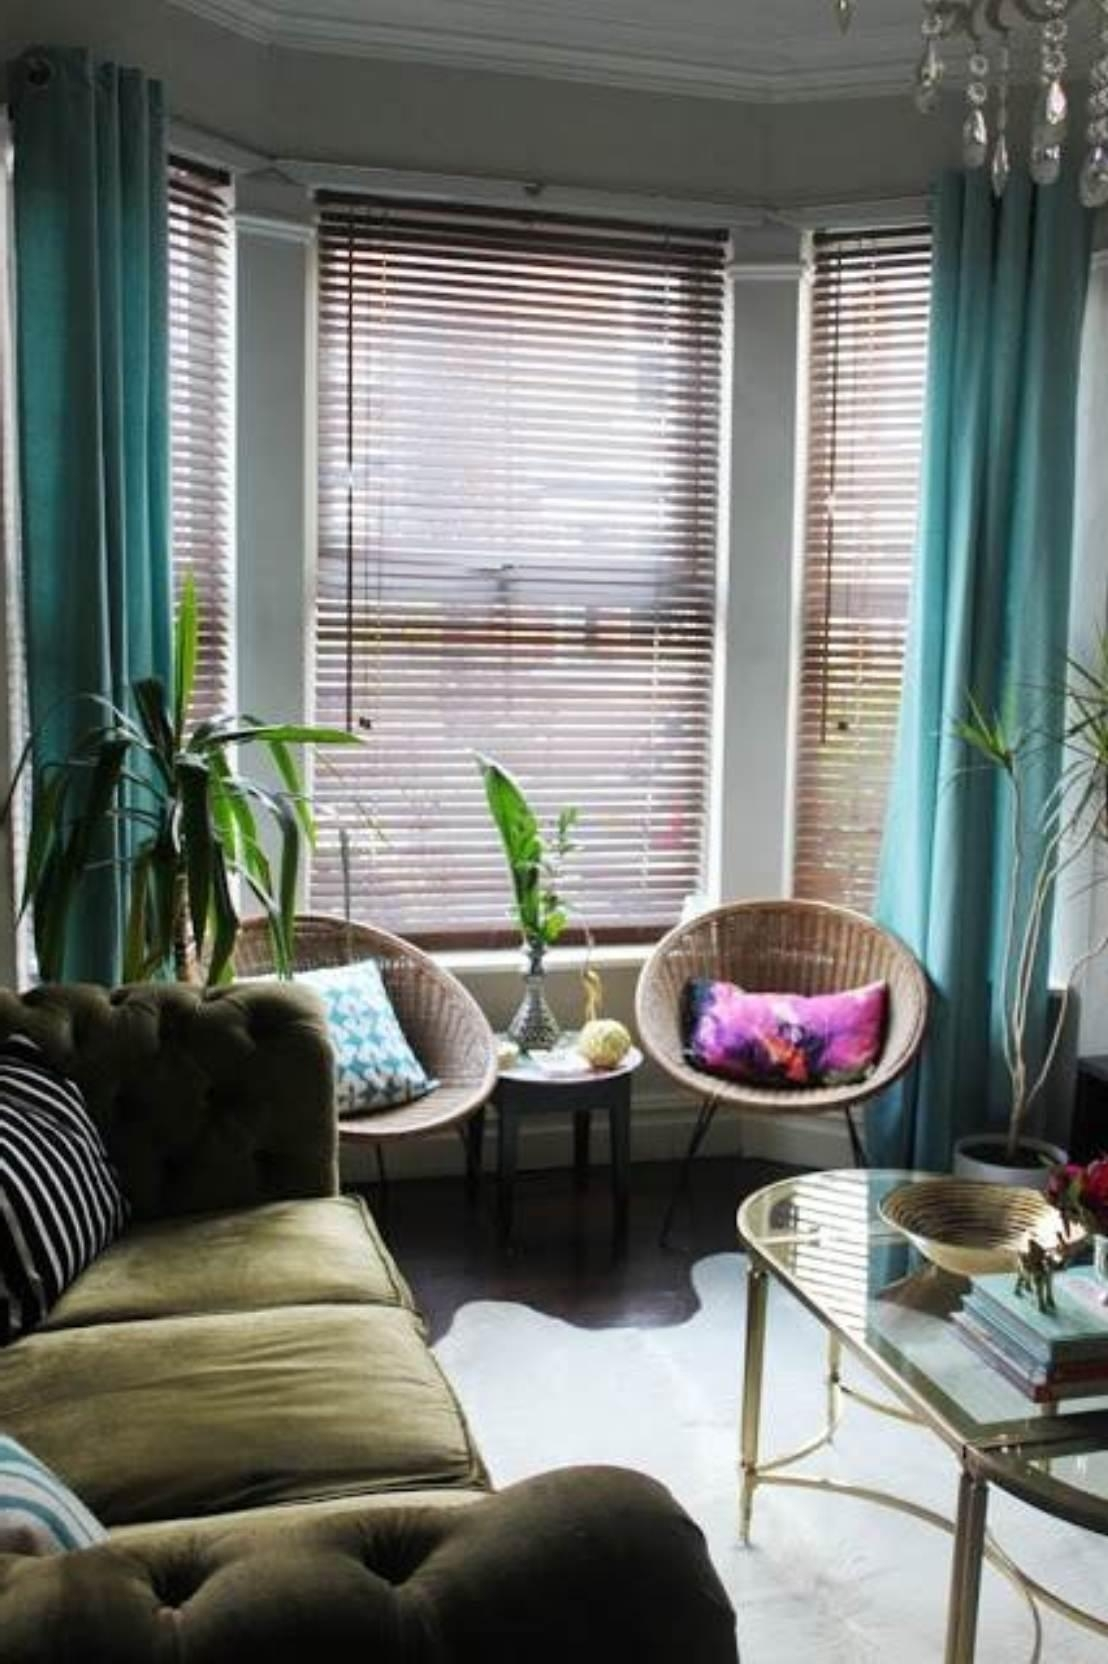 Decorate & Design : Curtains For Bay Windows Drapes Window Ideas Throughout Bay Window Sofas (Image 10 of 20)